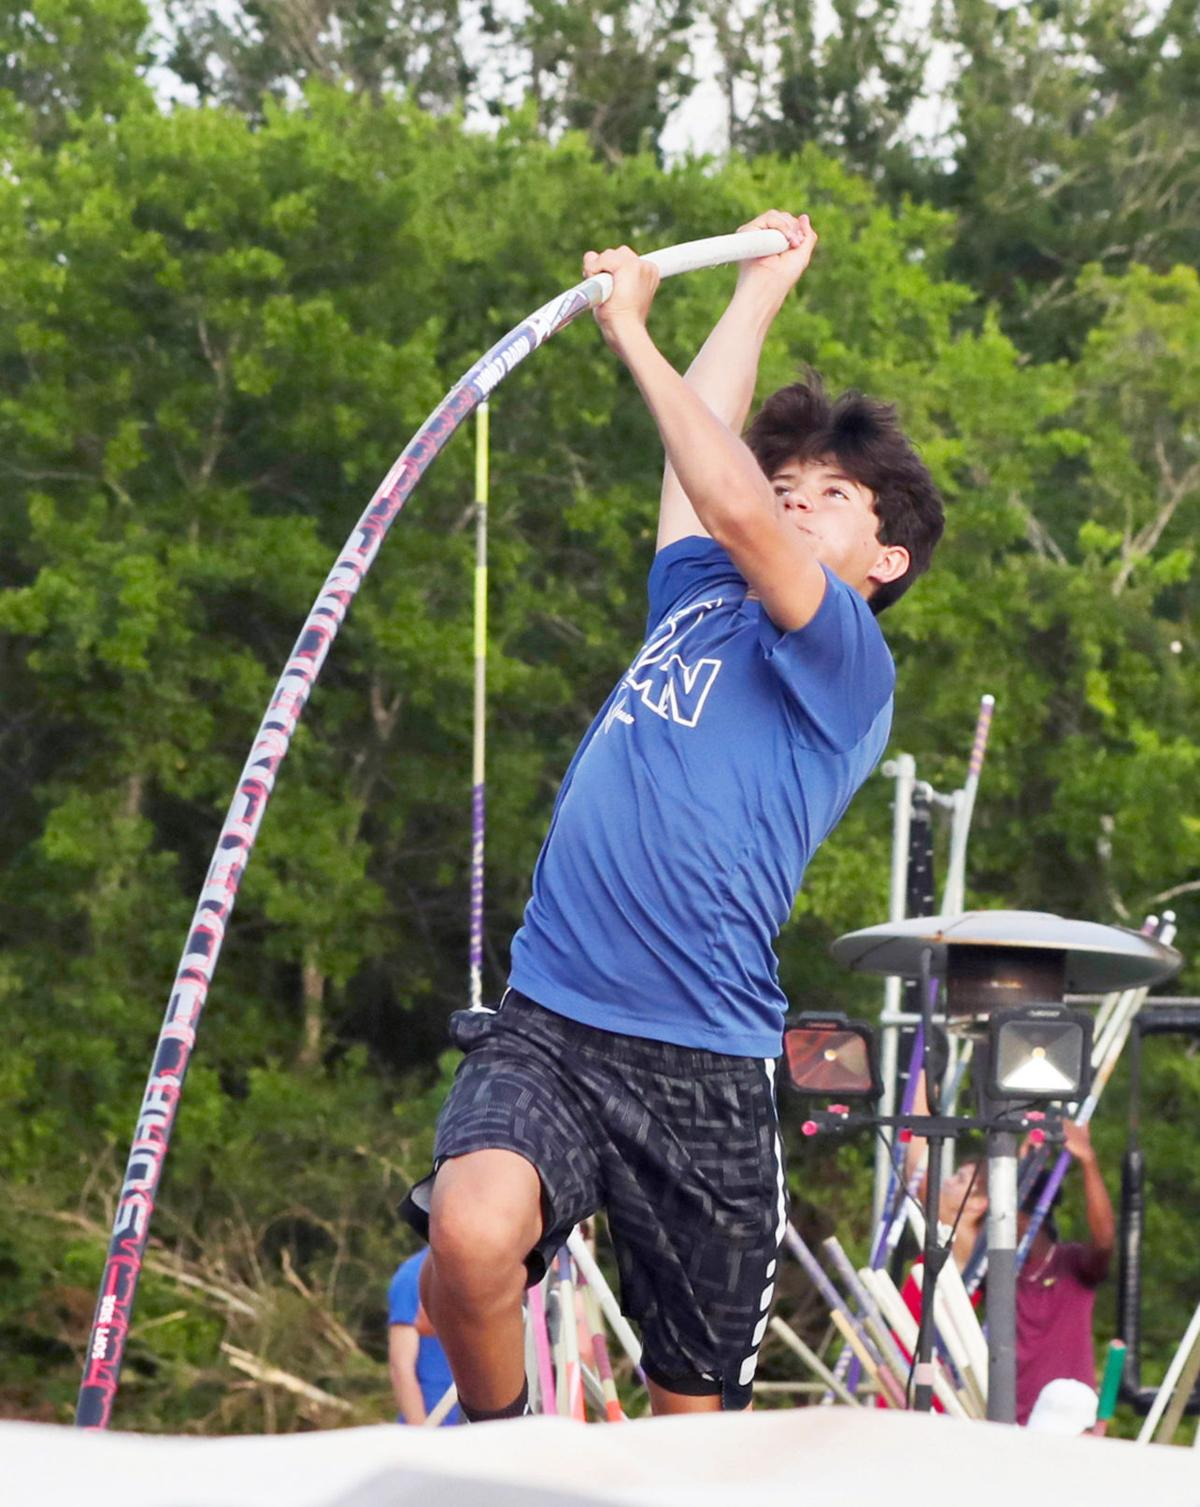 Vaulters set personal records at tune up competition